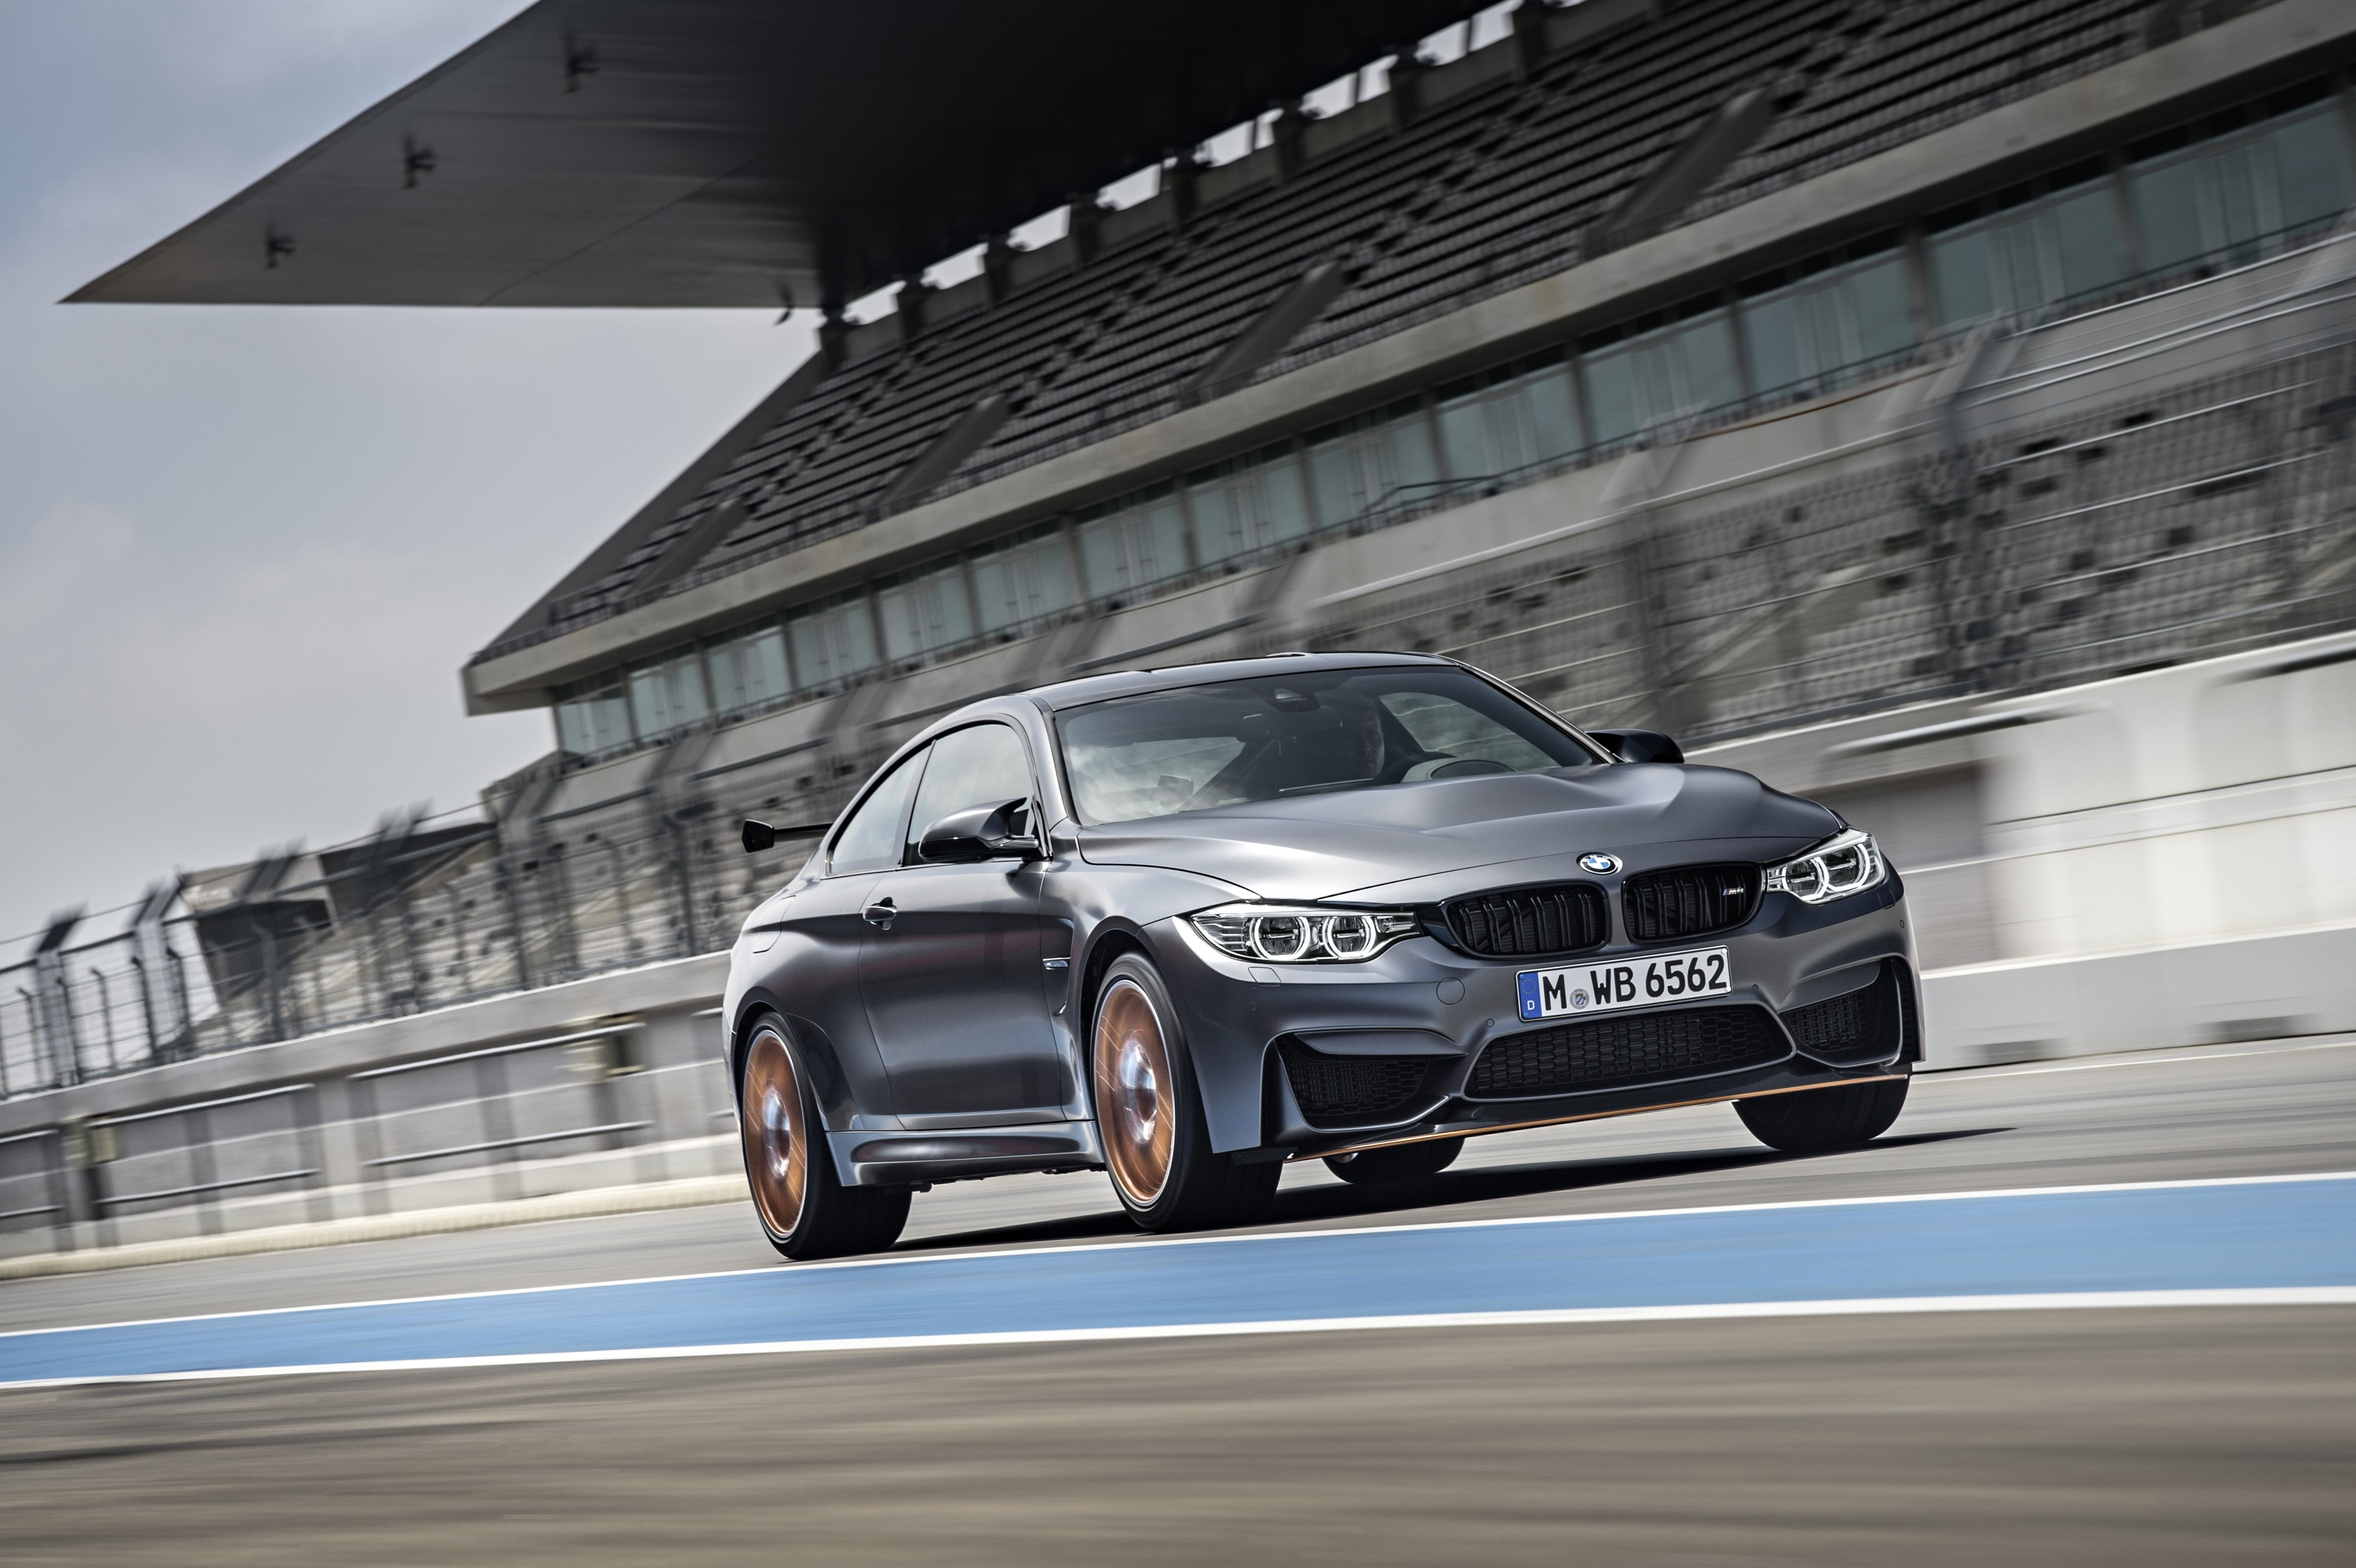 Fastest Car In The World Wallpaper 2015 Bmw Releases The M4 Gts Nurburgring Record Video Alfa